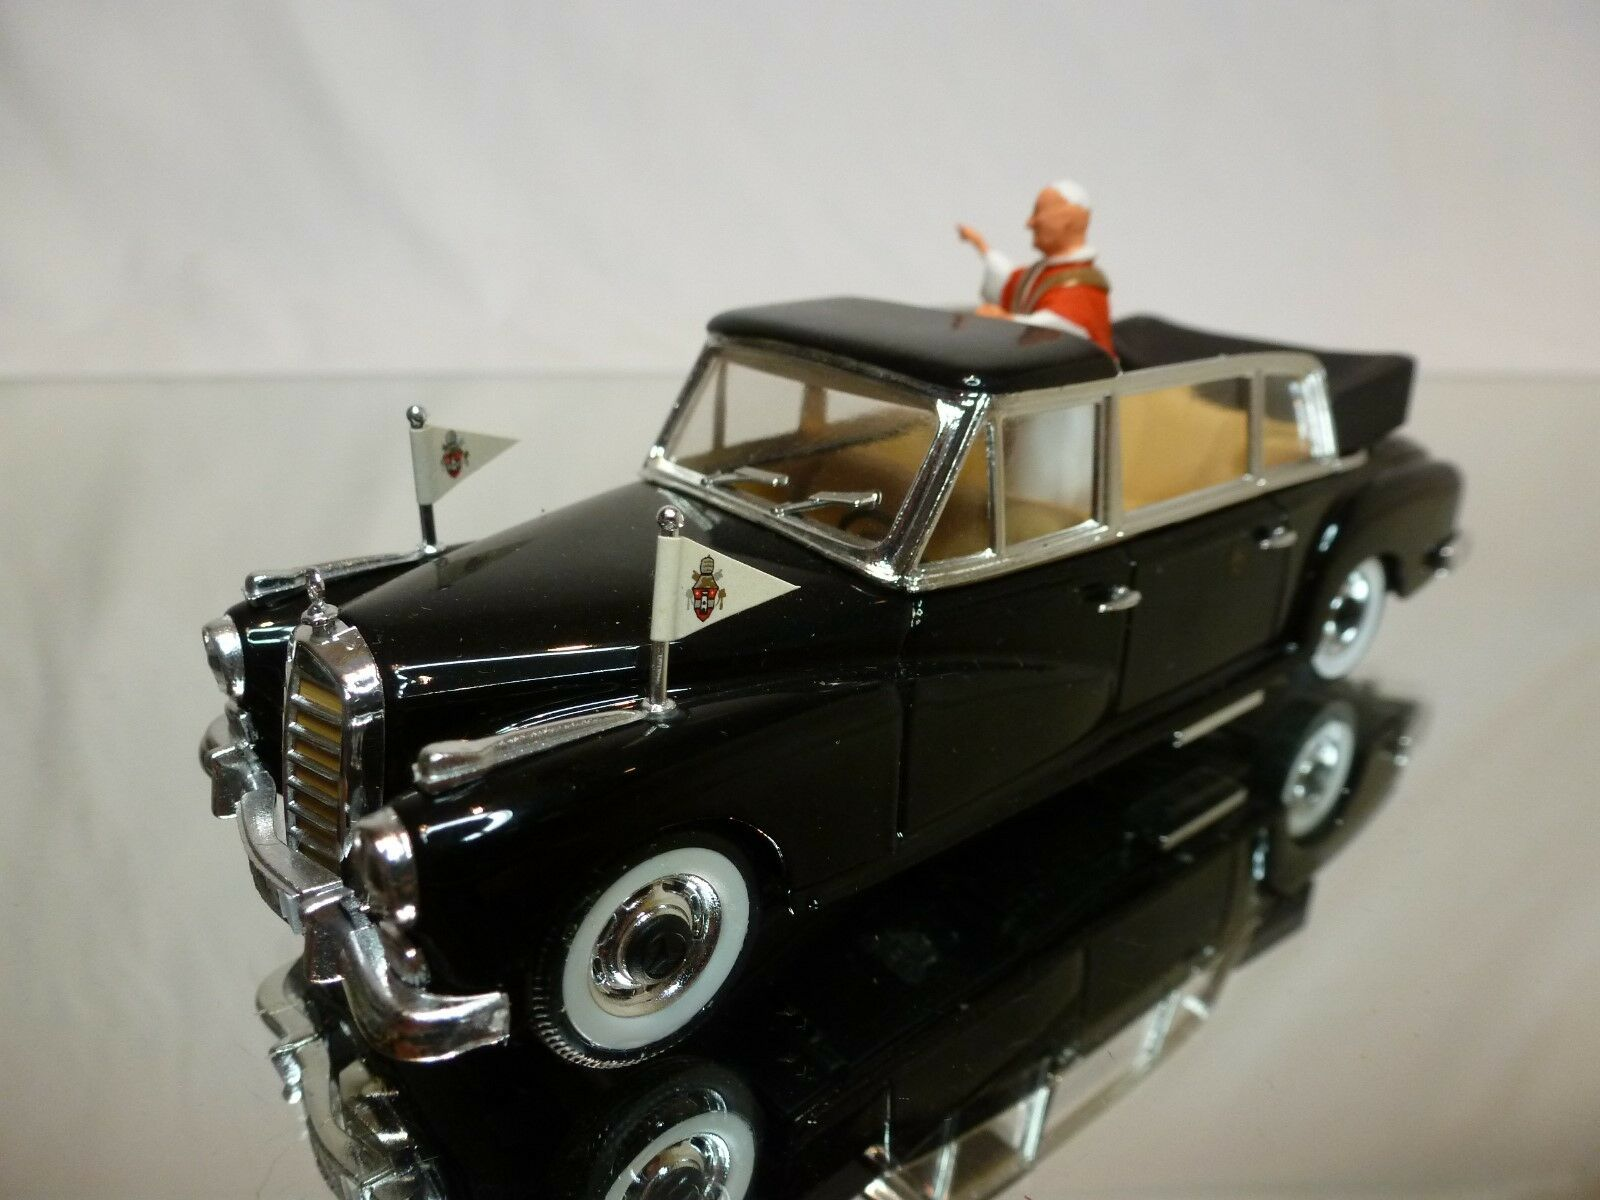 RIO 1 43 - - - MERCEDES 300D LIMOUSINE 1960 - POPE PAPA   - VERY GOOD CONDITION. 271a50